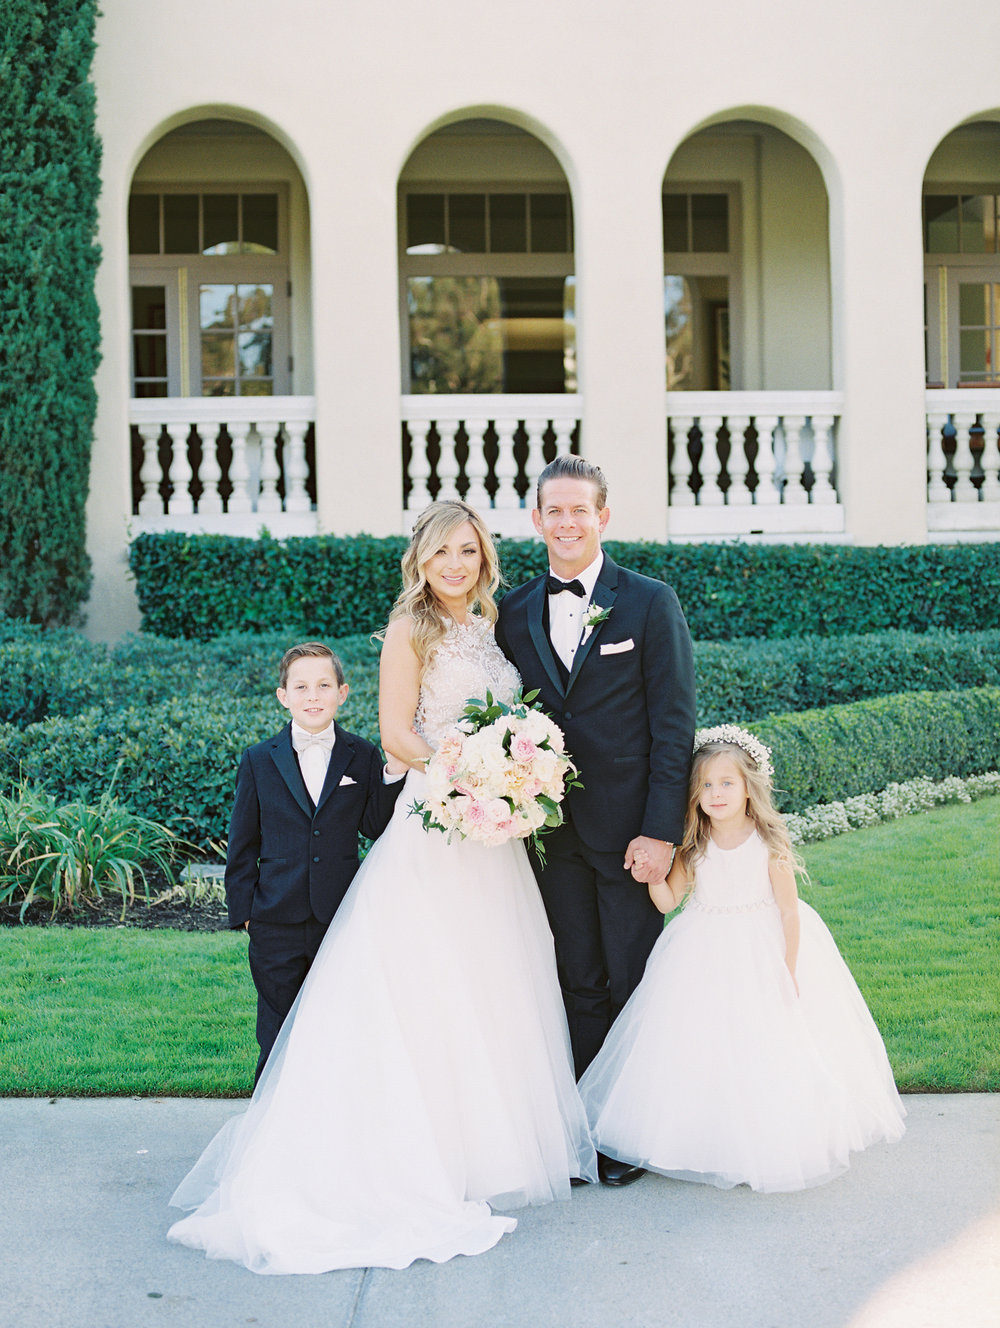 thevanitybelle.com-san diego-wedding day-family wedding-bridal beauty-wedding inspiration